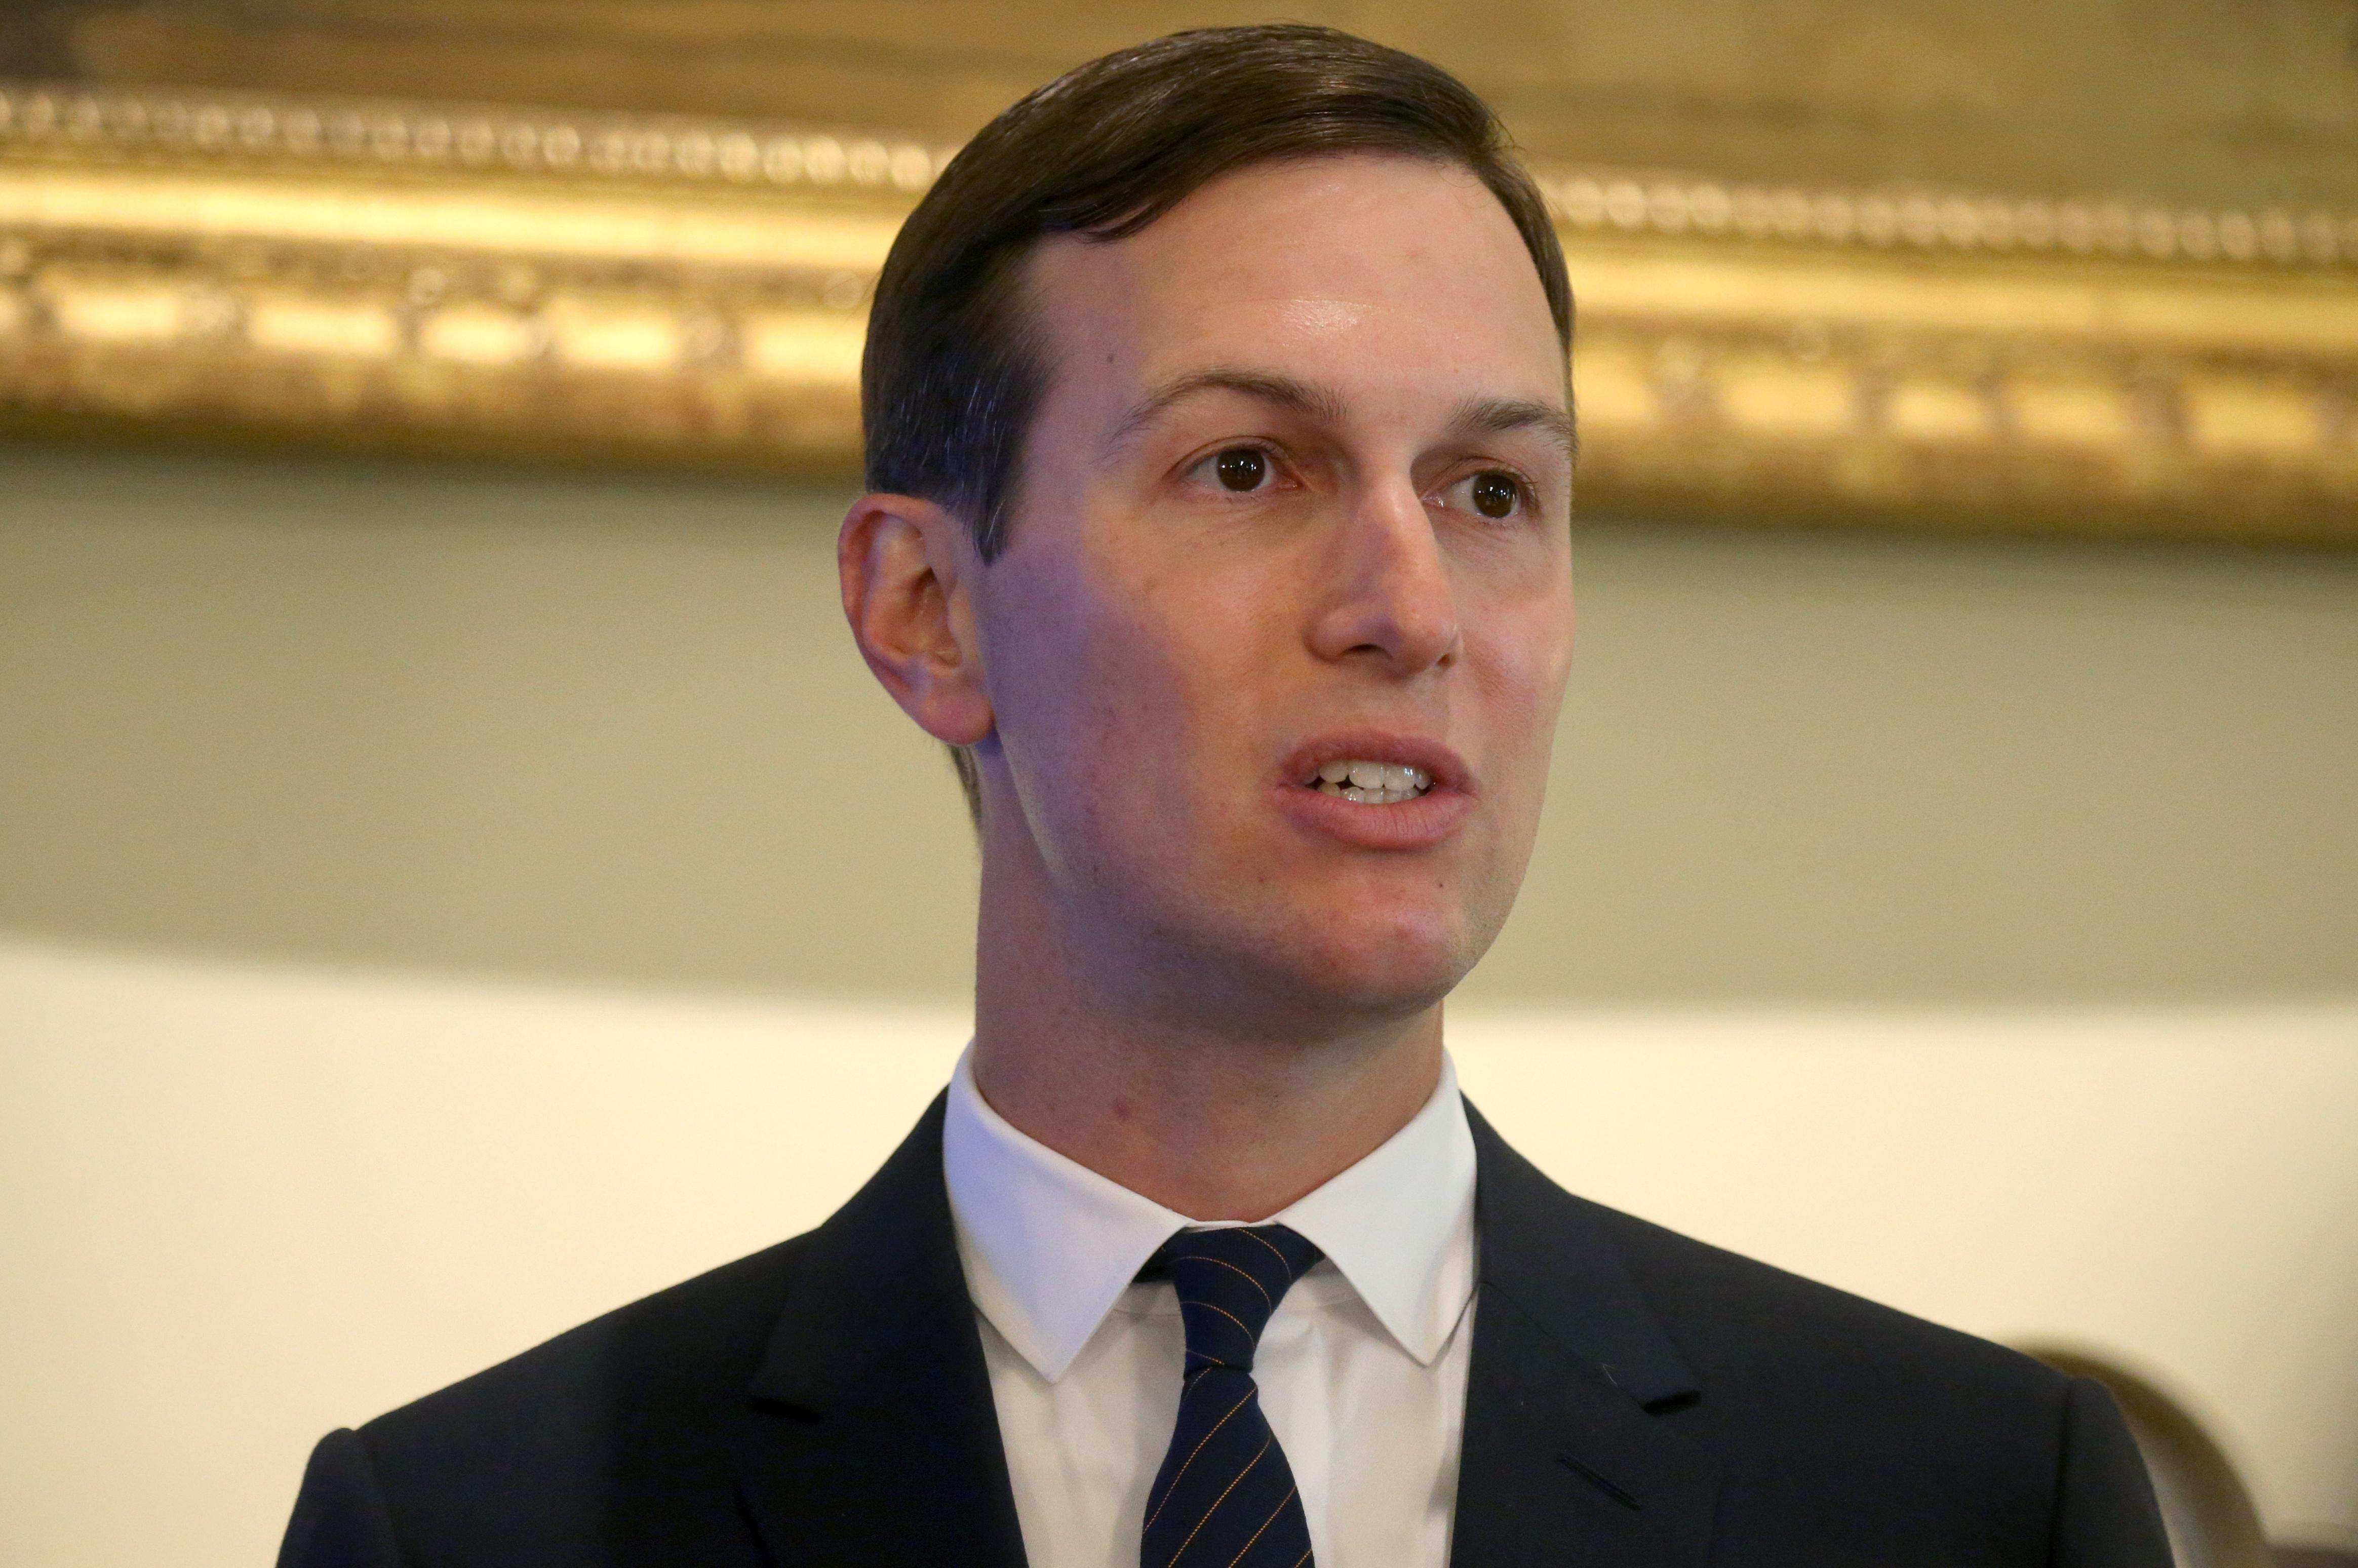 White House's Kushner to finalize Palestinian economic plan on Middle East tour - official